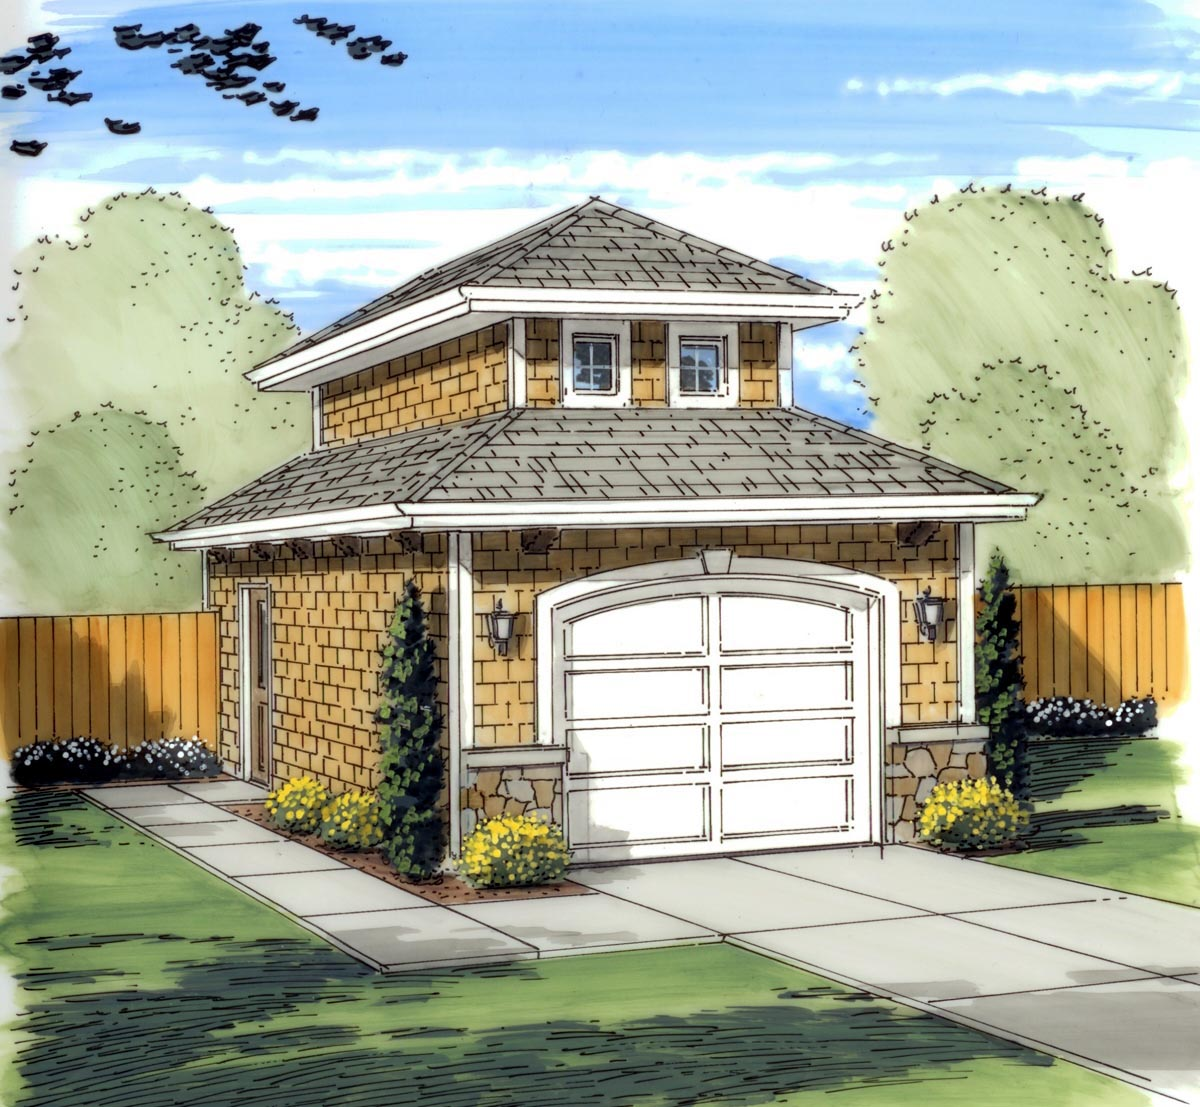 1 1 2 Story Two Car Garage With Apartment: Traditional Style Garage Plan 41134